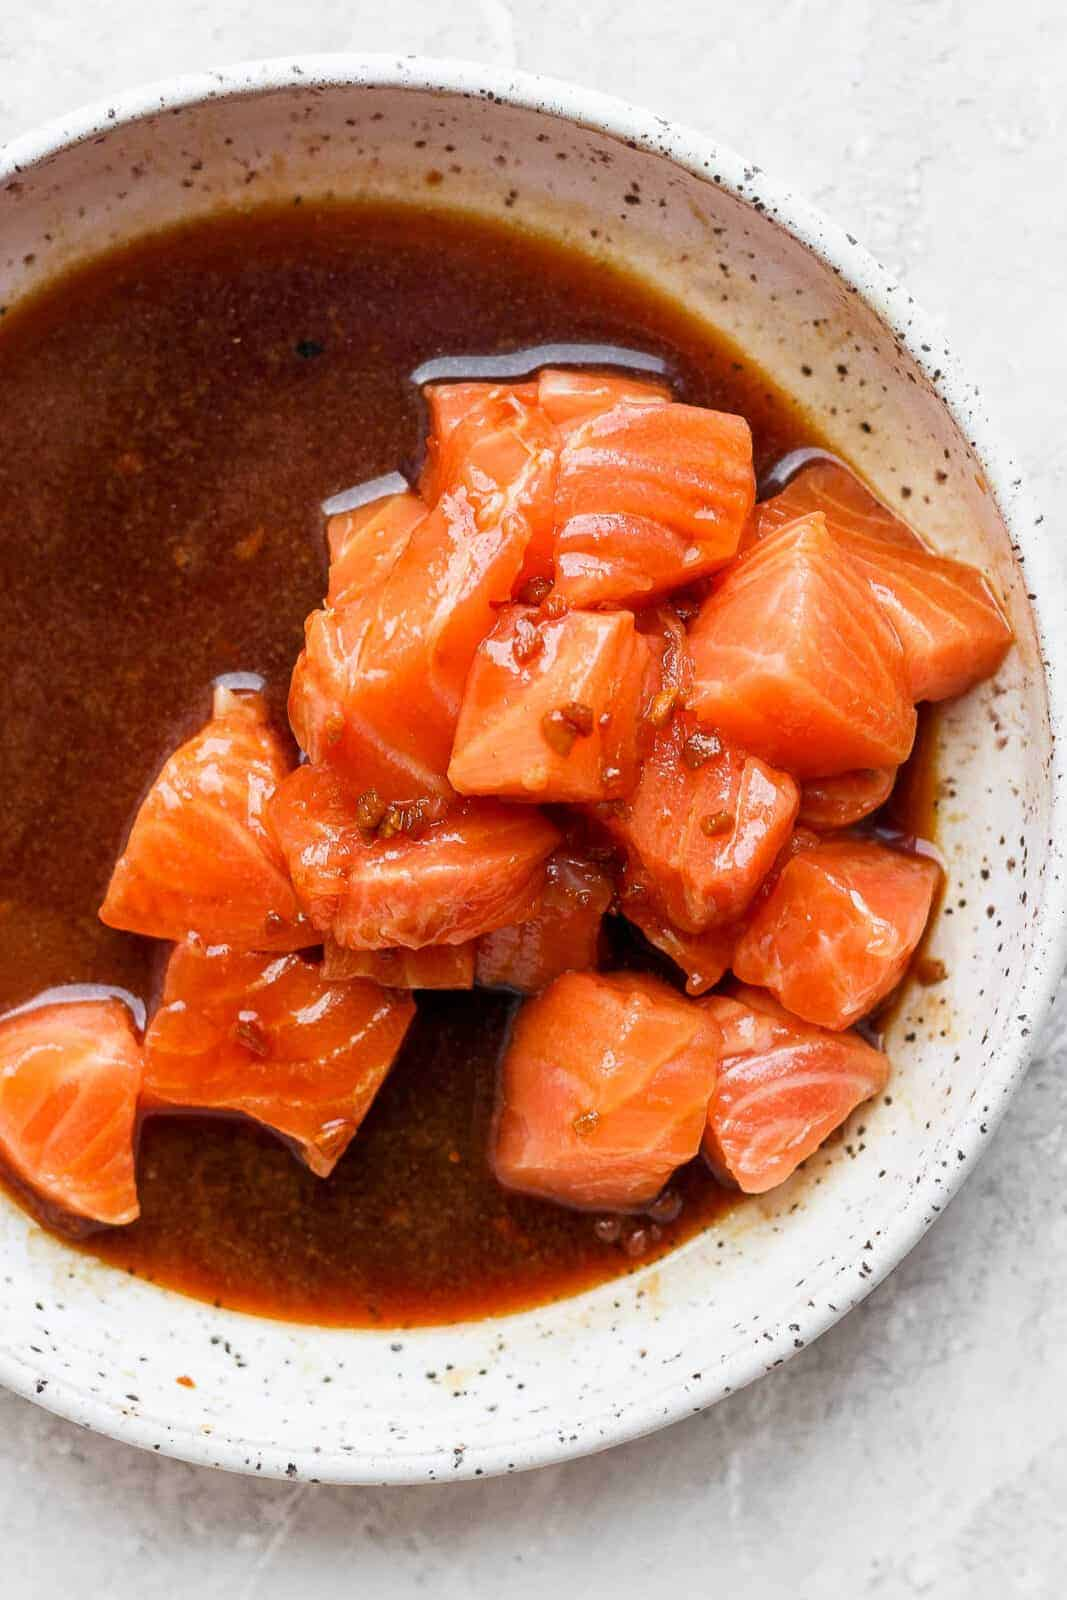 Cut up pieces of sushi grade salmon in a bowl with the poke sauce.